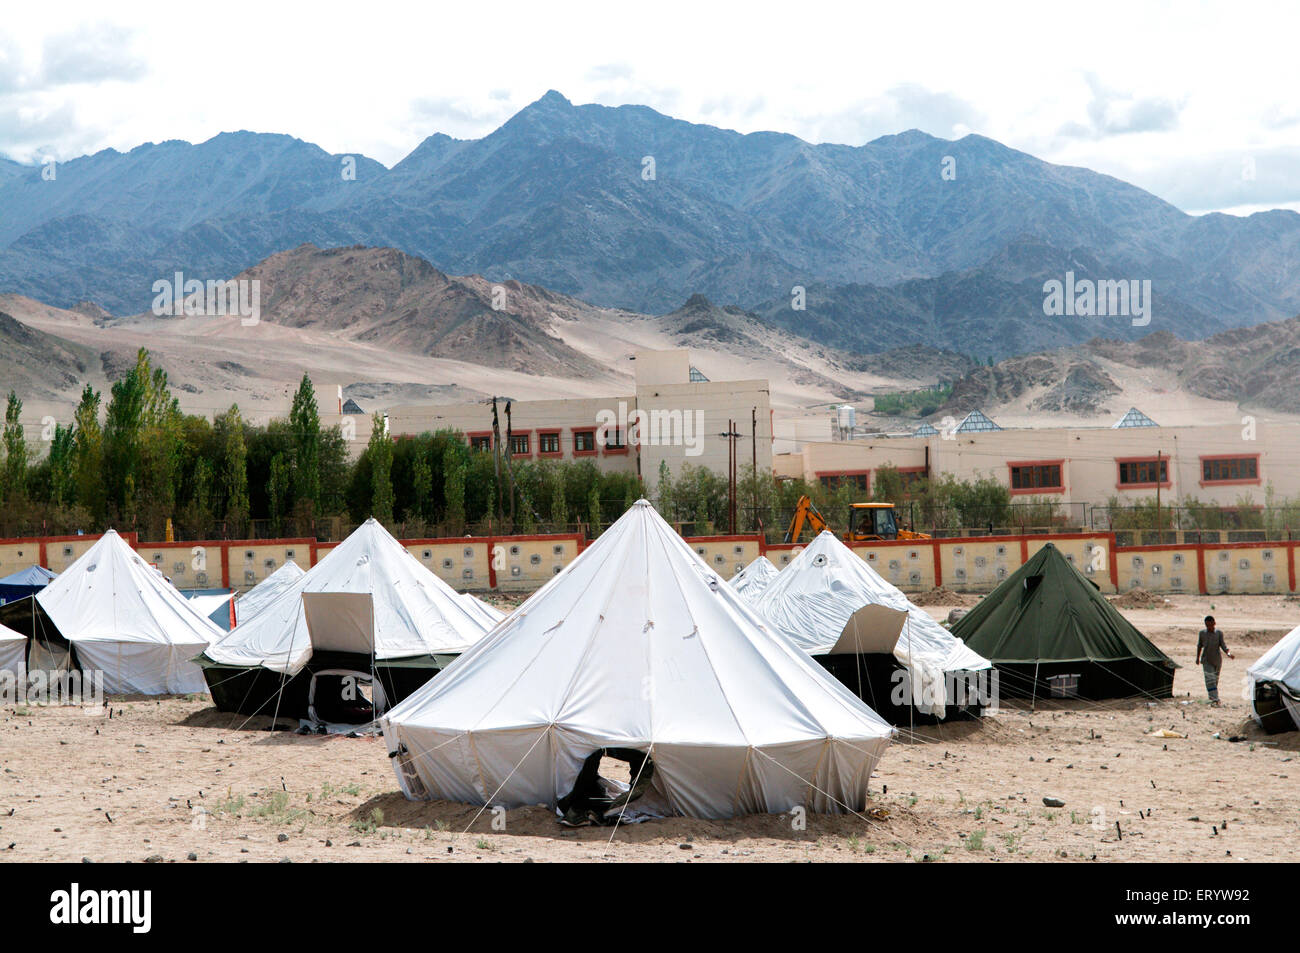 Victims relief camp in choglamsar due to flashflood ; Leh ; Ladakh ; Jammu and Kashmir ; India - Stock Image